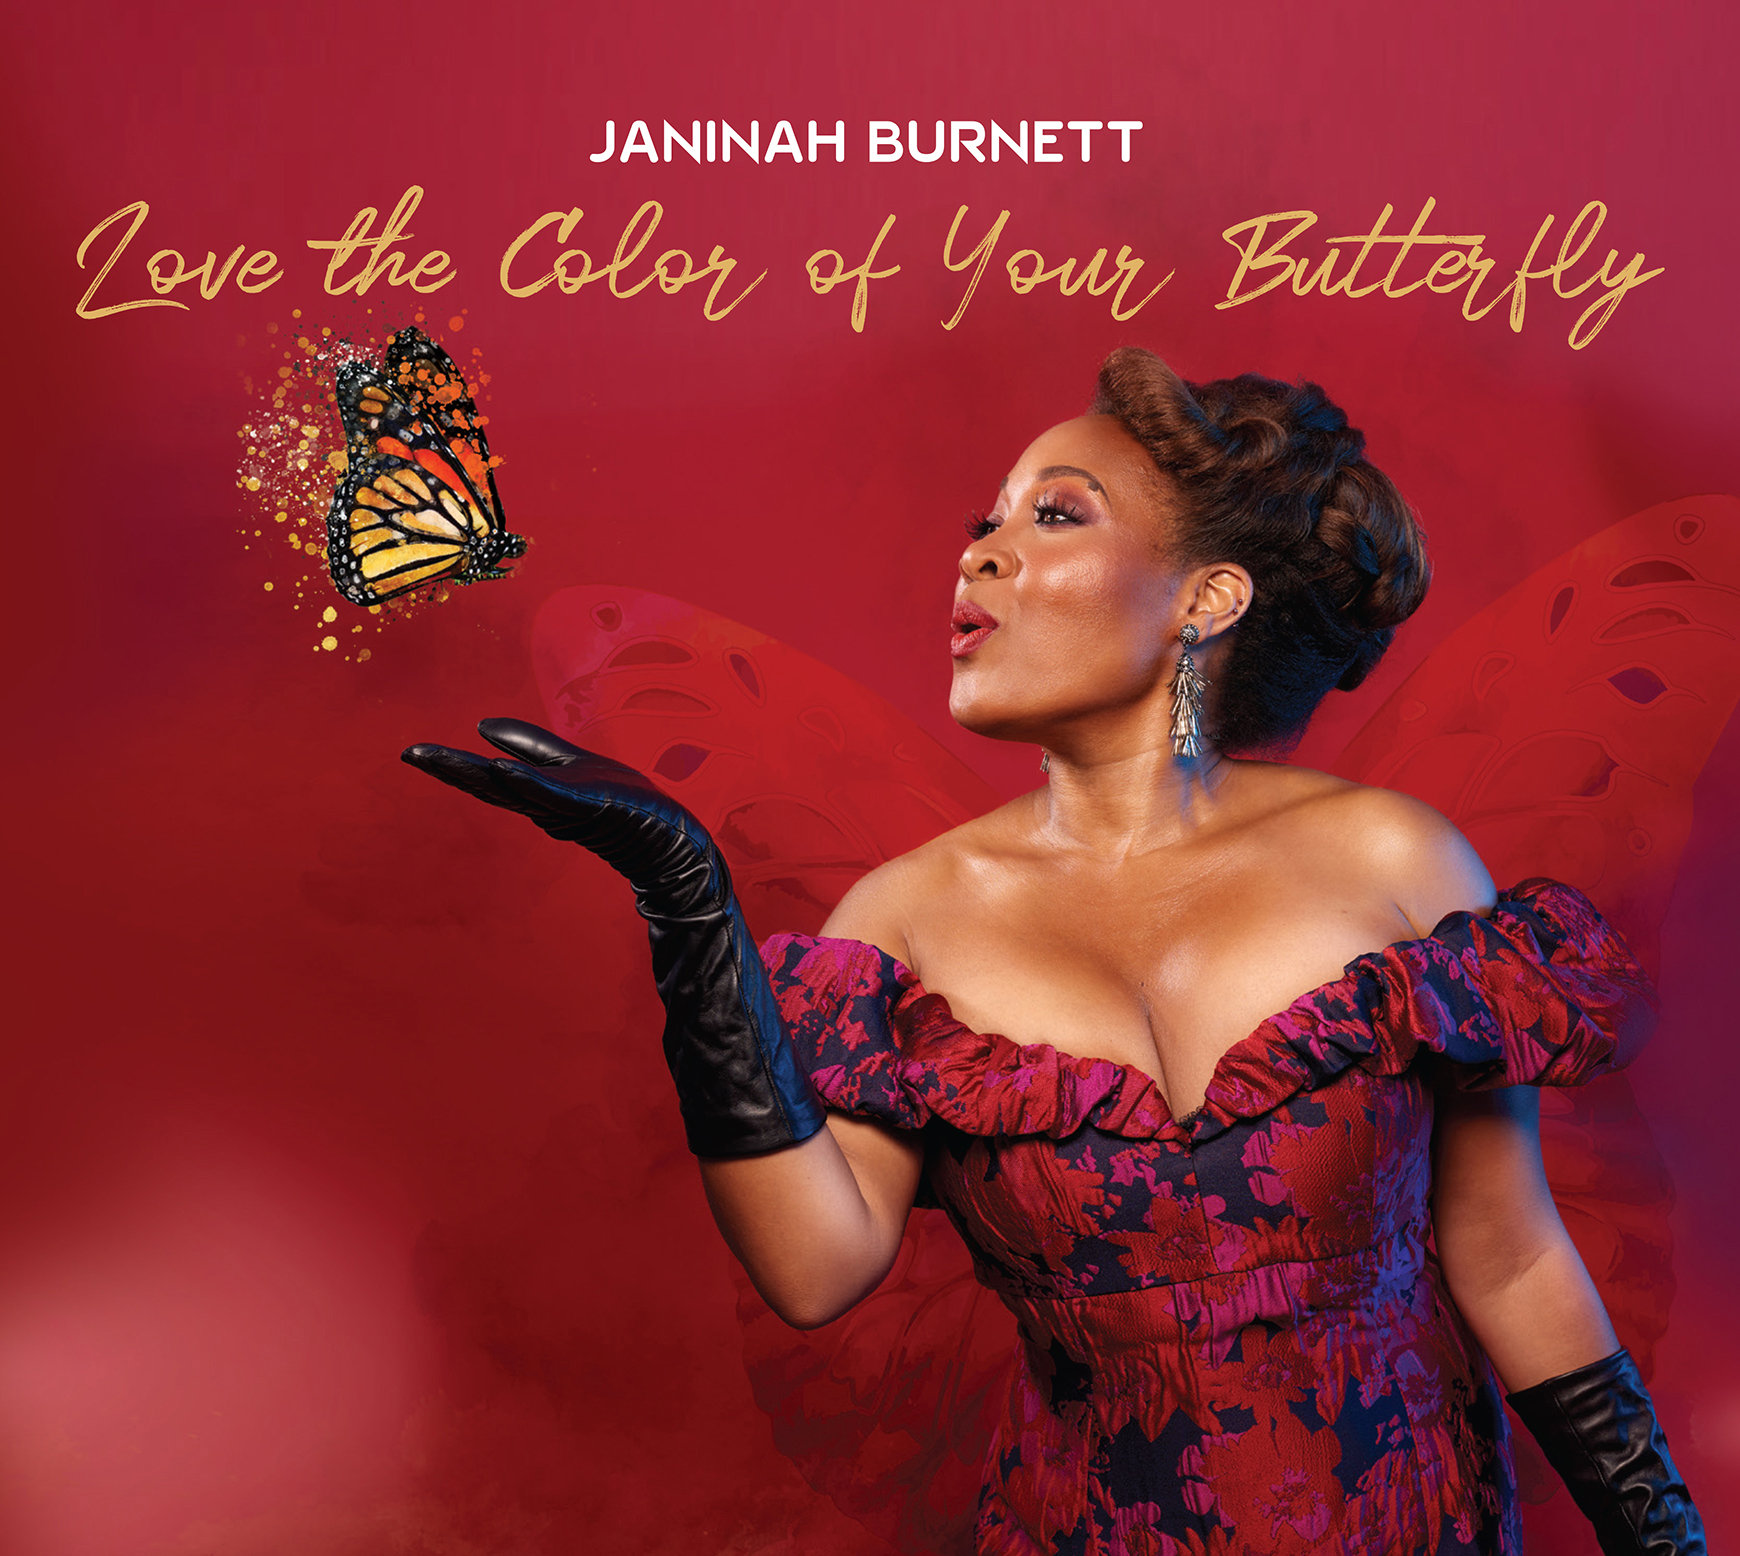 REVIEWS: Janinah Burnett, Jihye Lee & Sounds of A&R on Musicalmemoirs's Blog